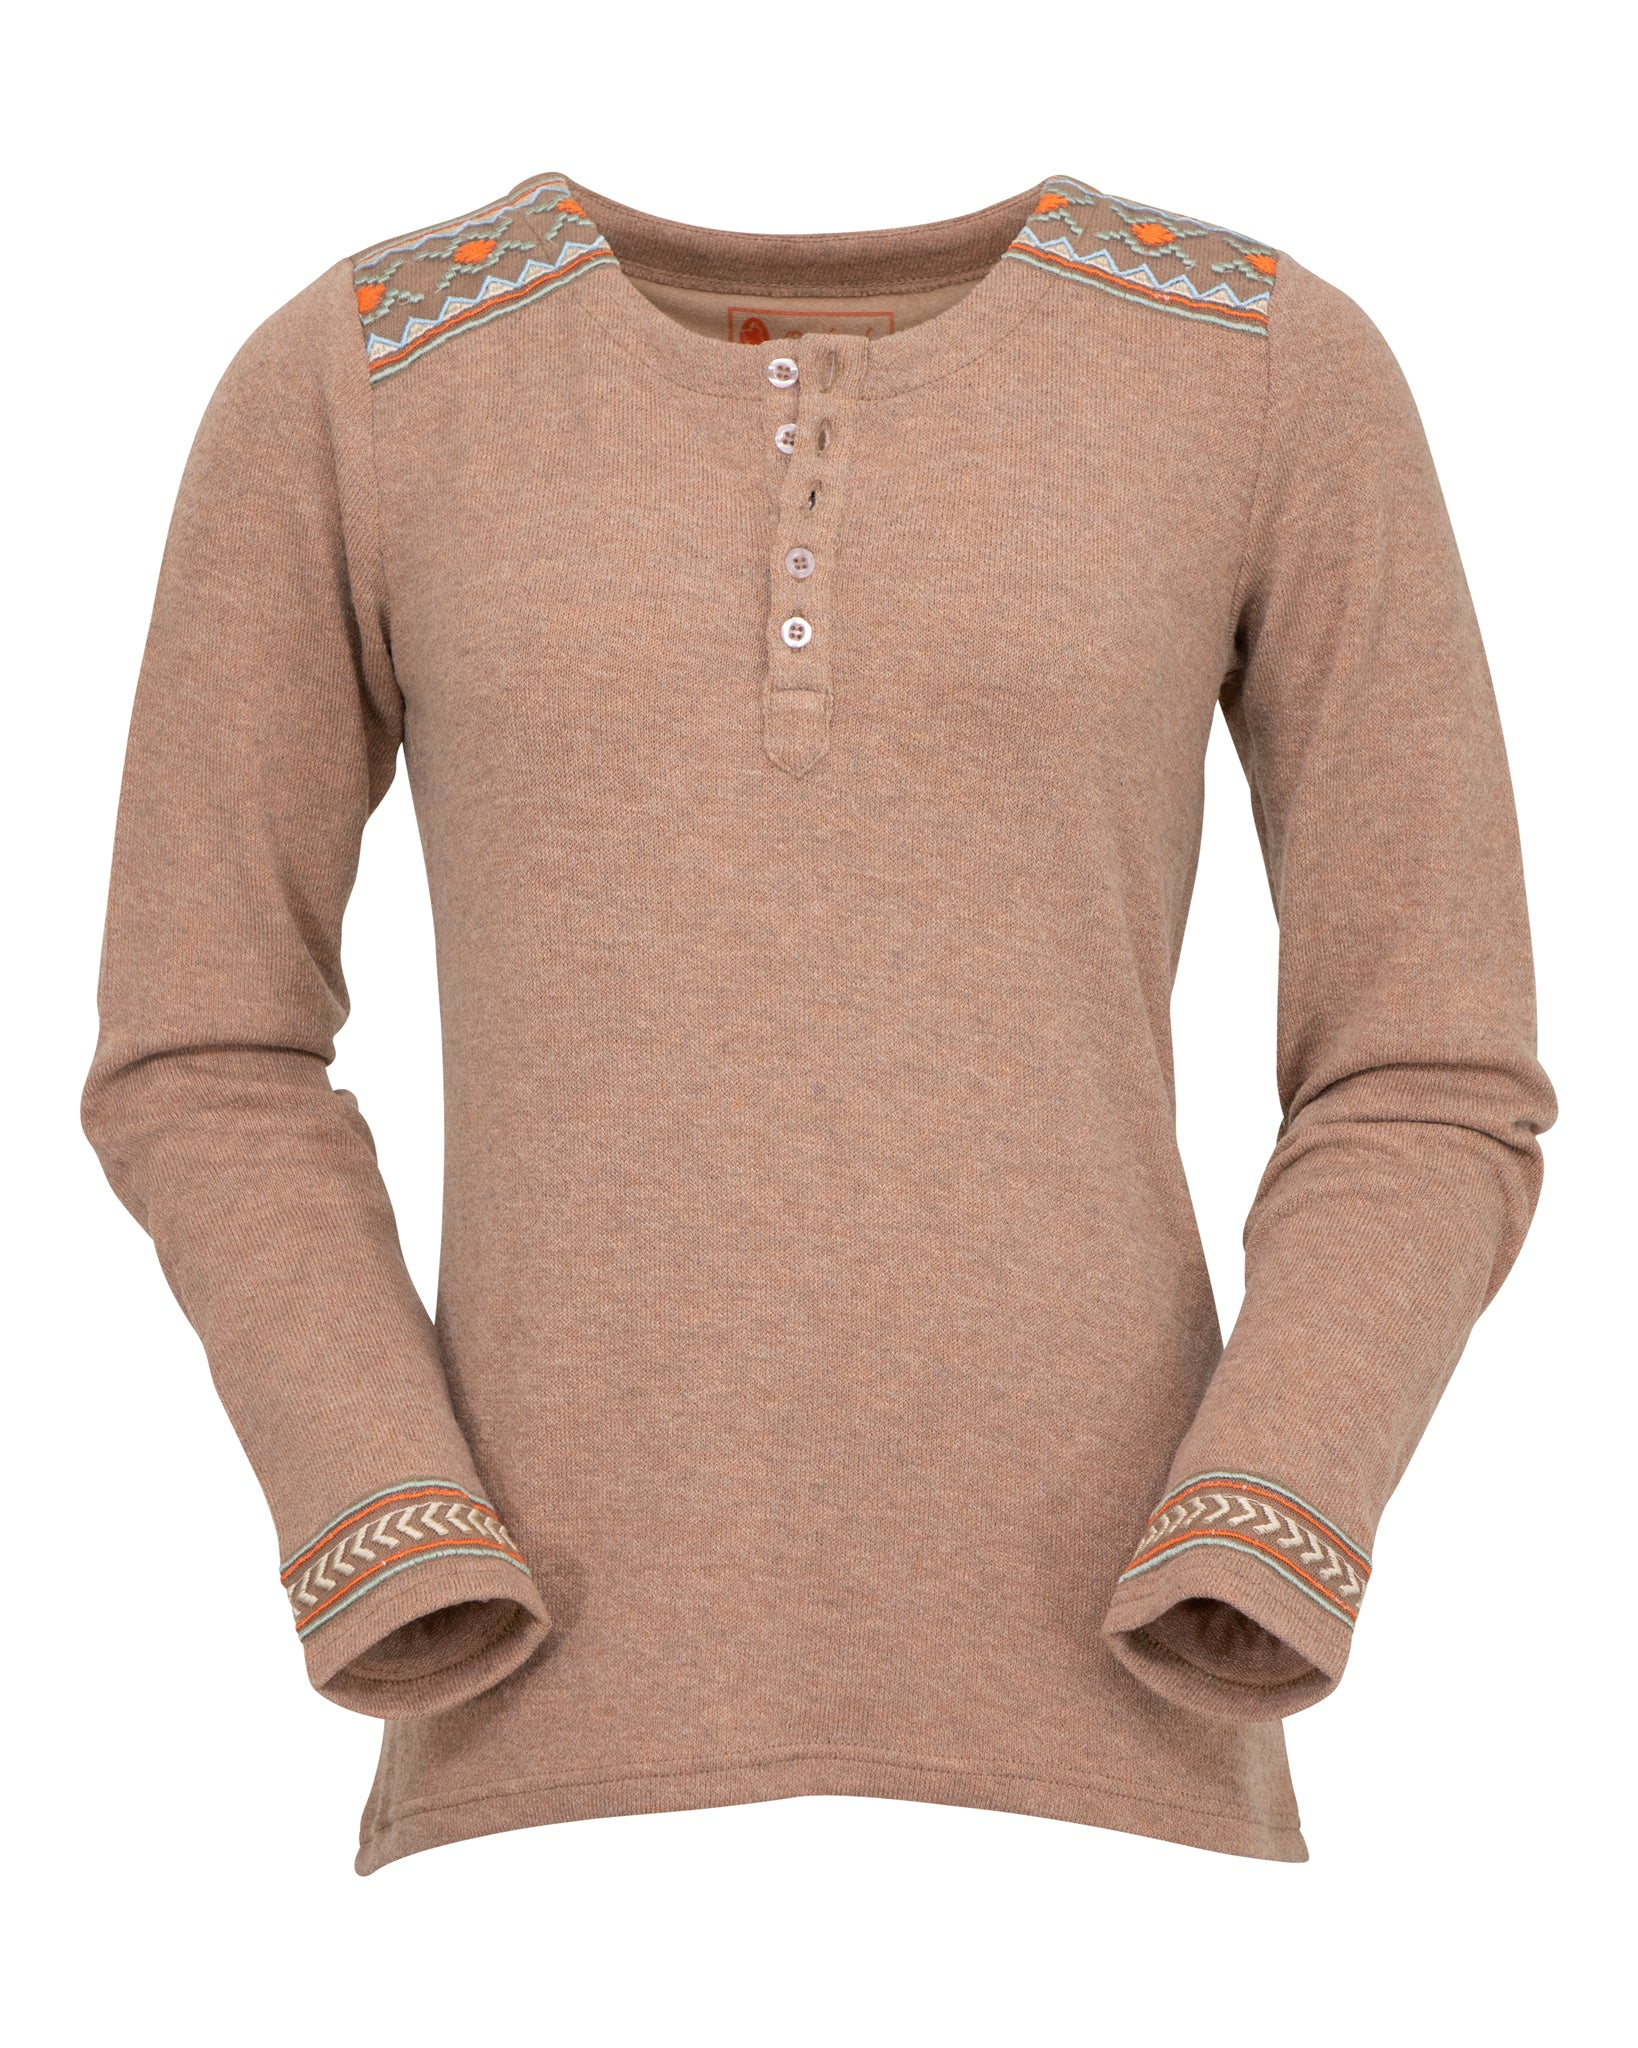 'Outback Trading' Julie Aztec Trim Tee - Taupe